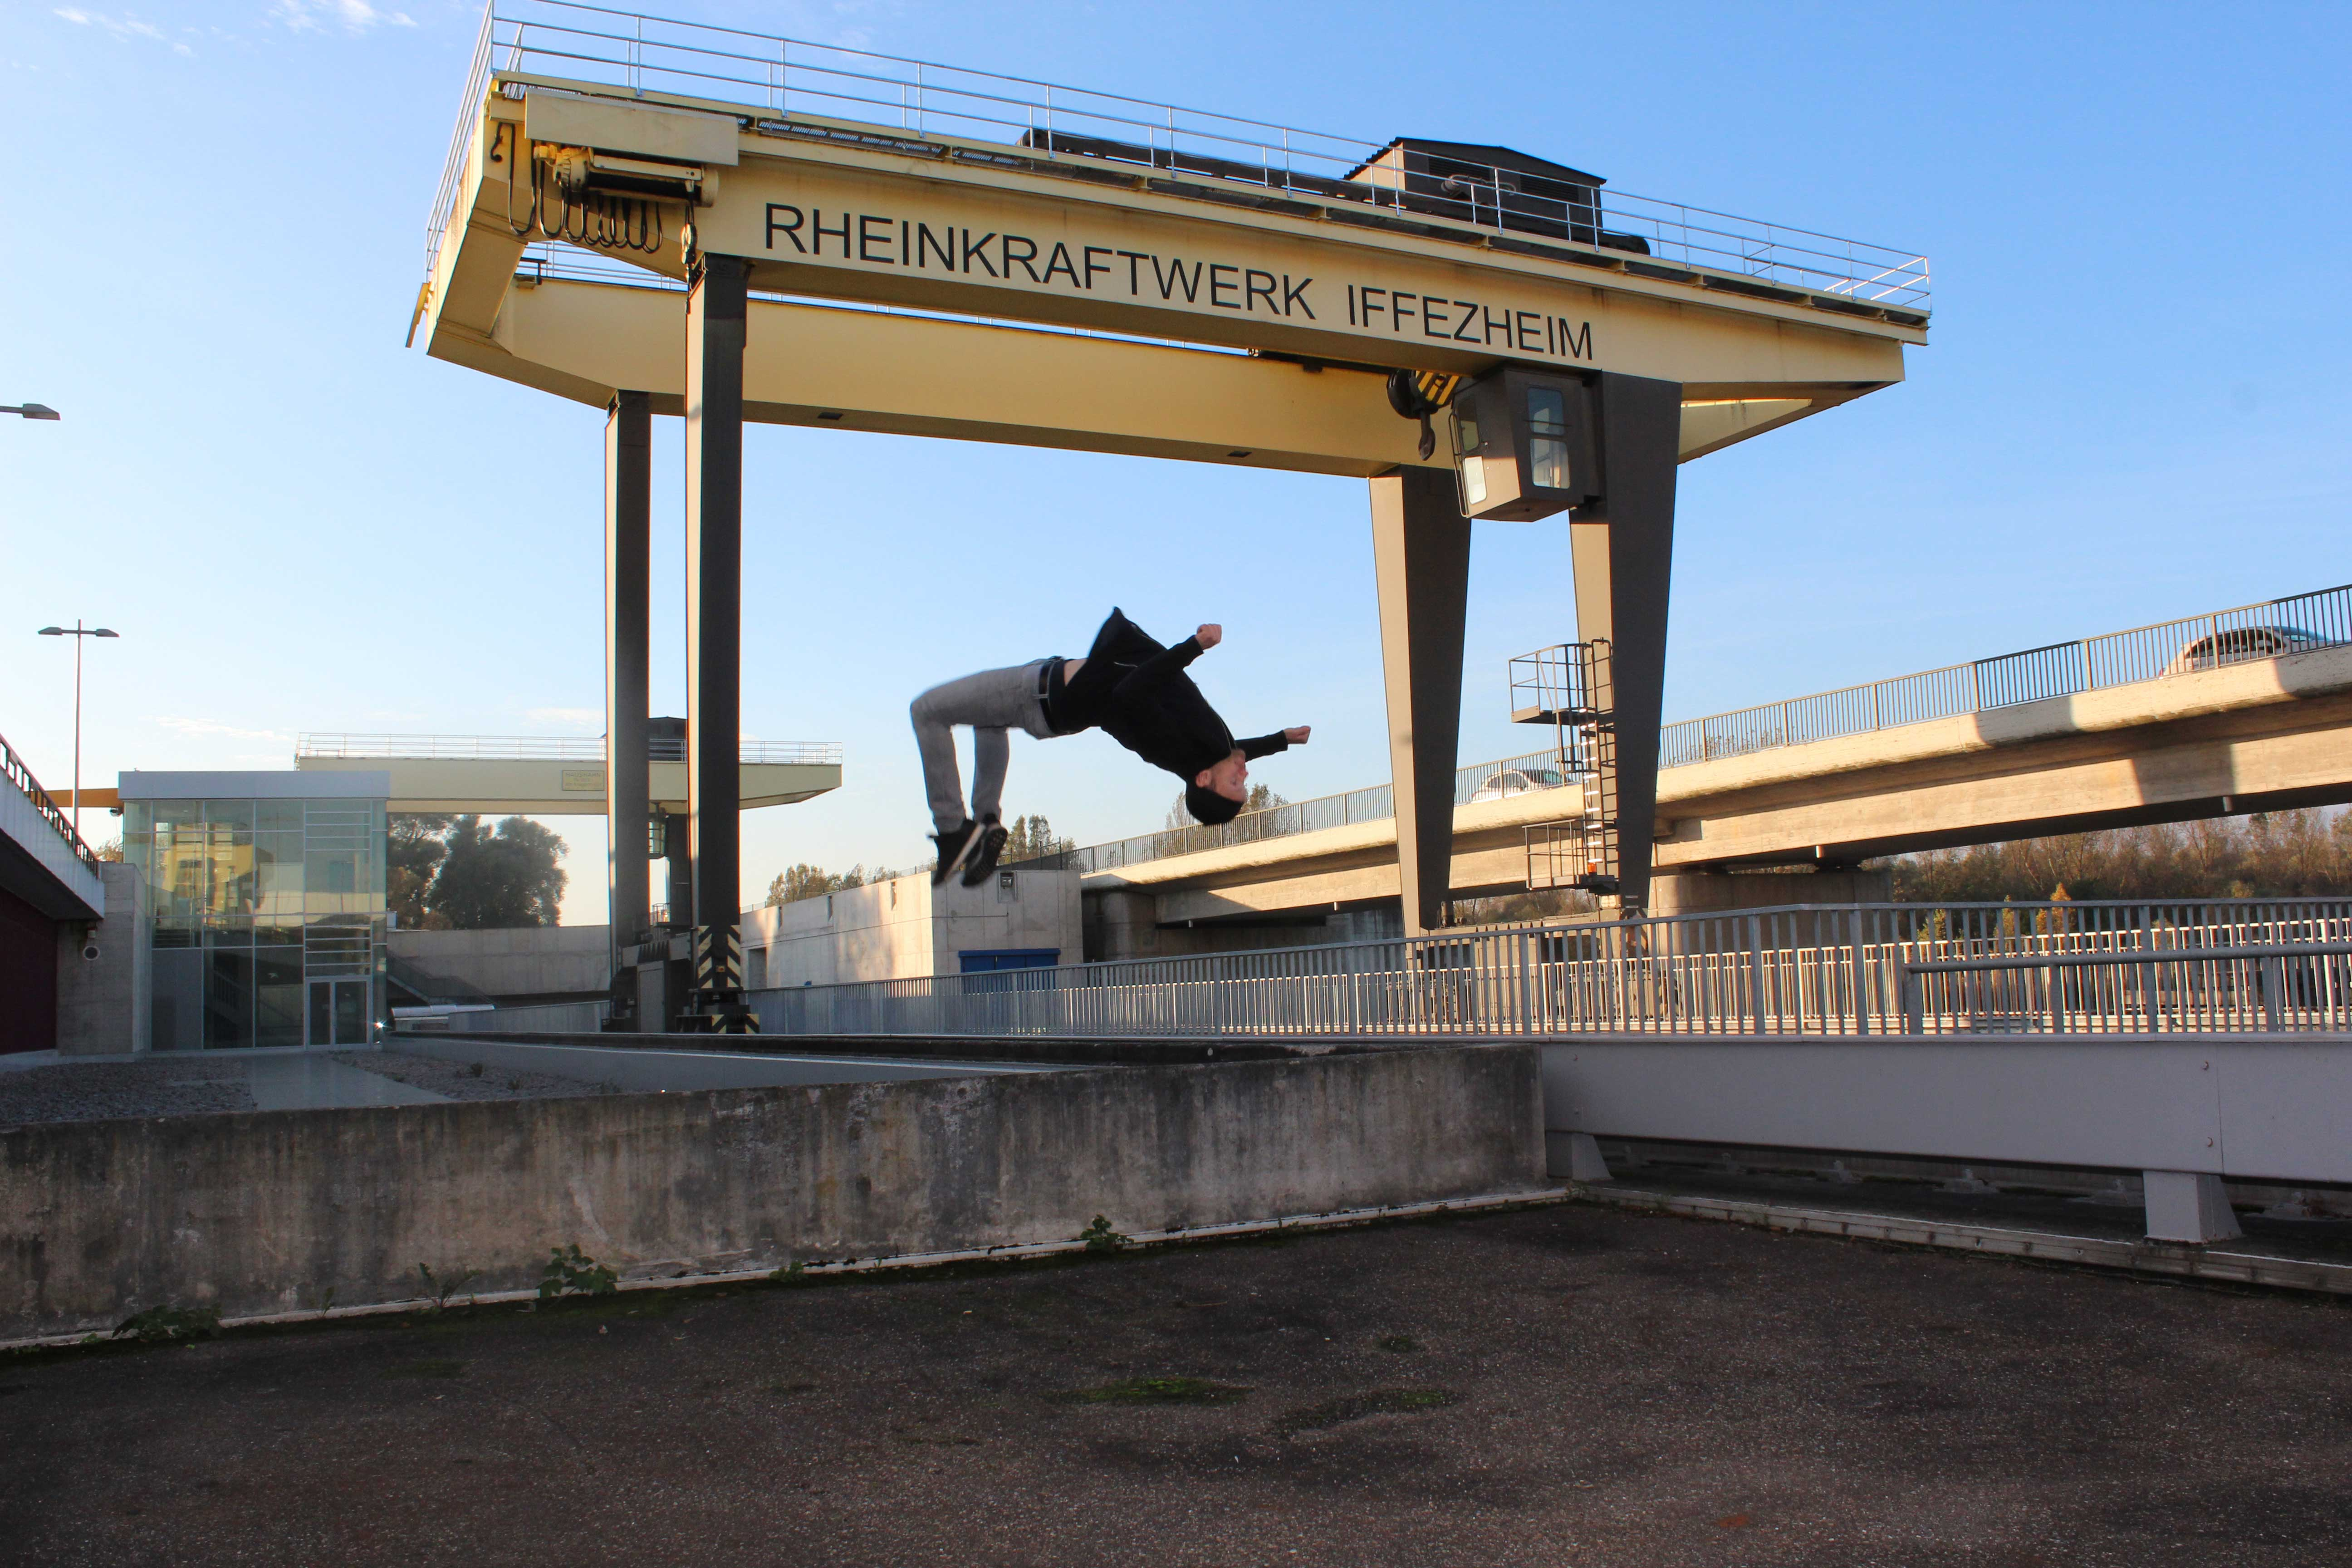 Ketchum Pleon worked with EnBW (*cl) to take photos of people performing parkour for their Instagram feed.